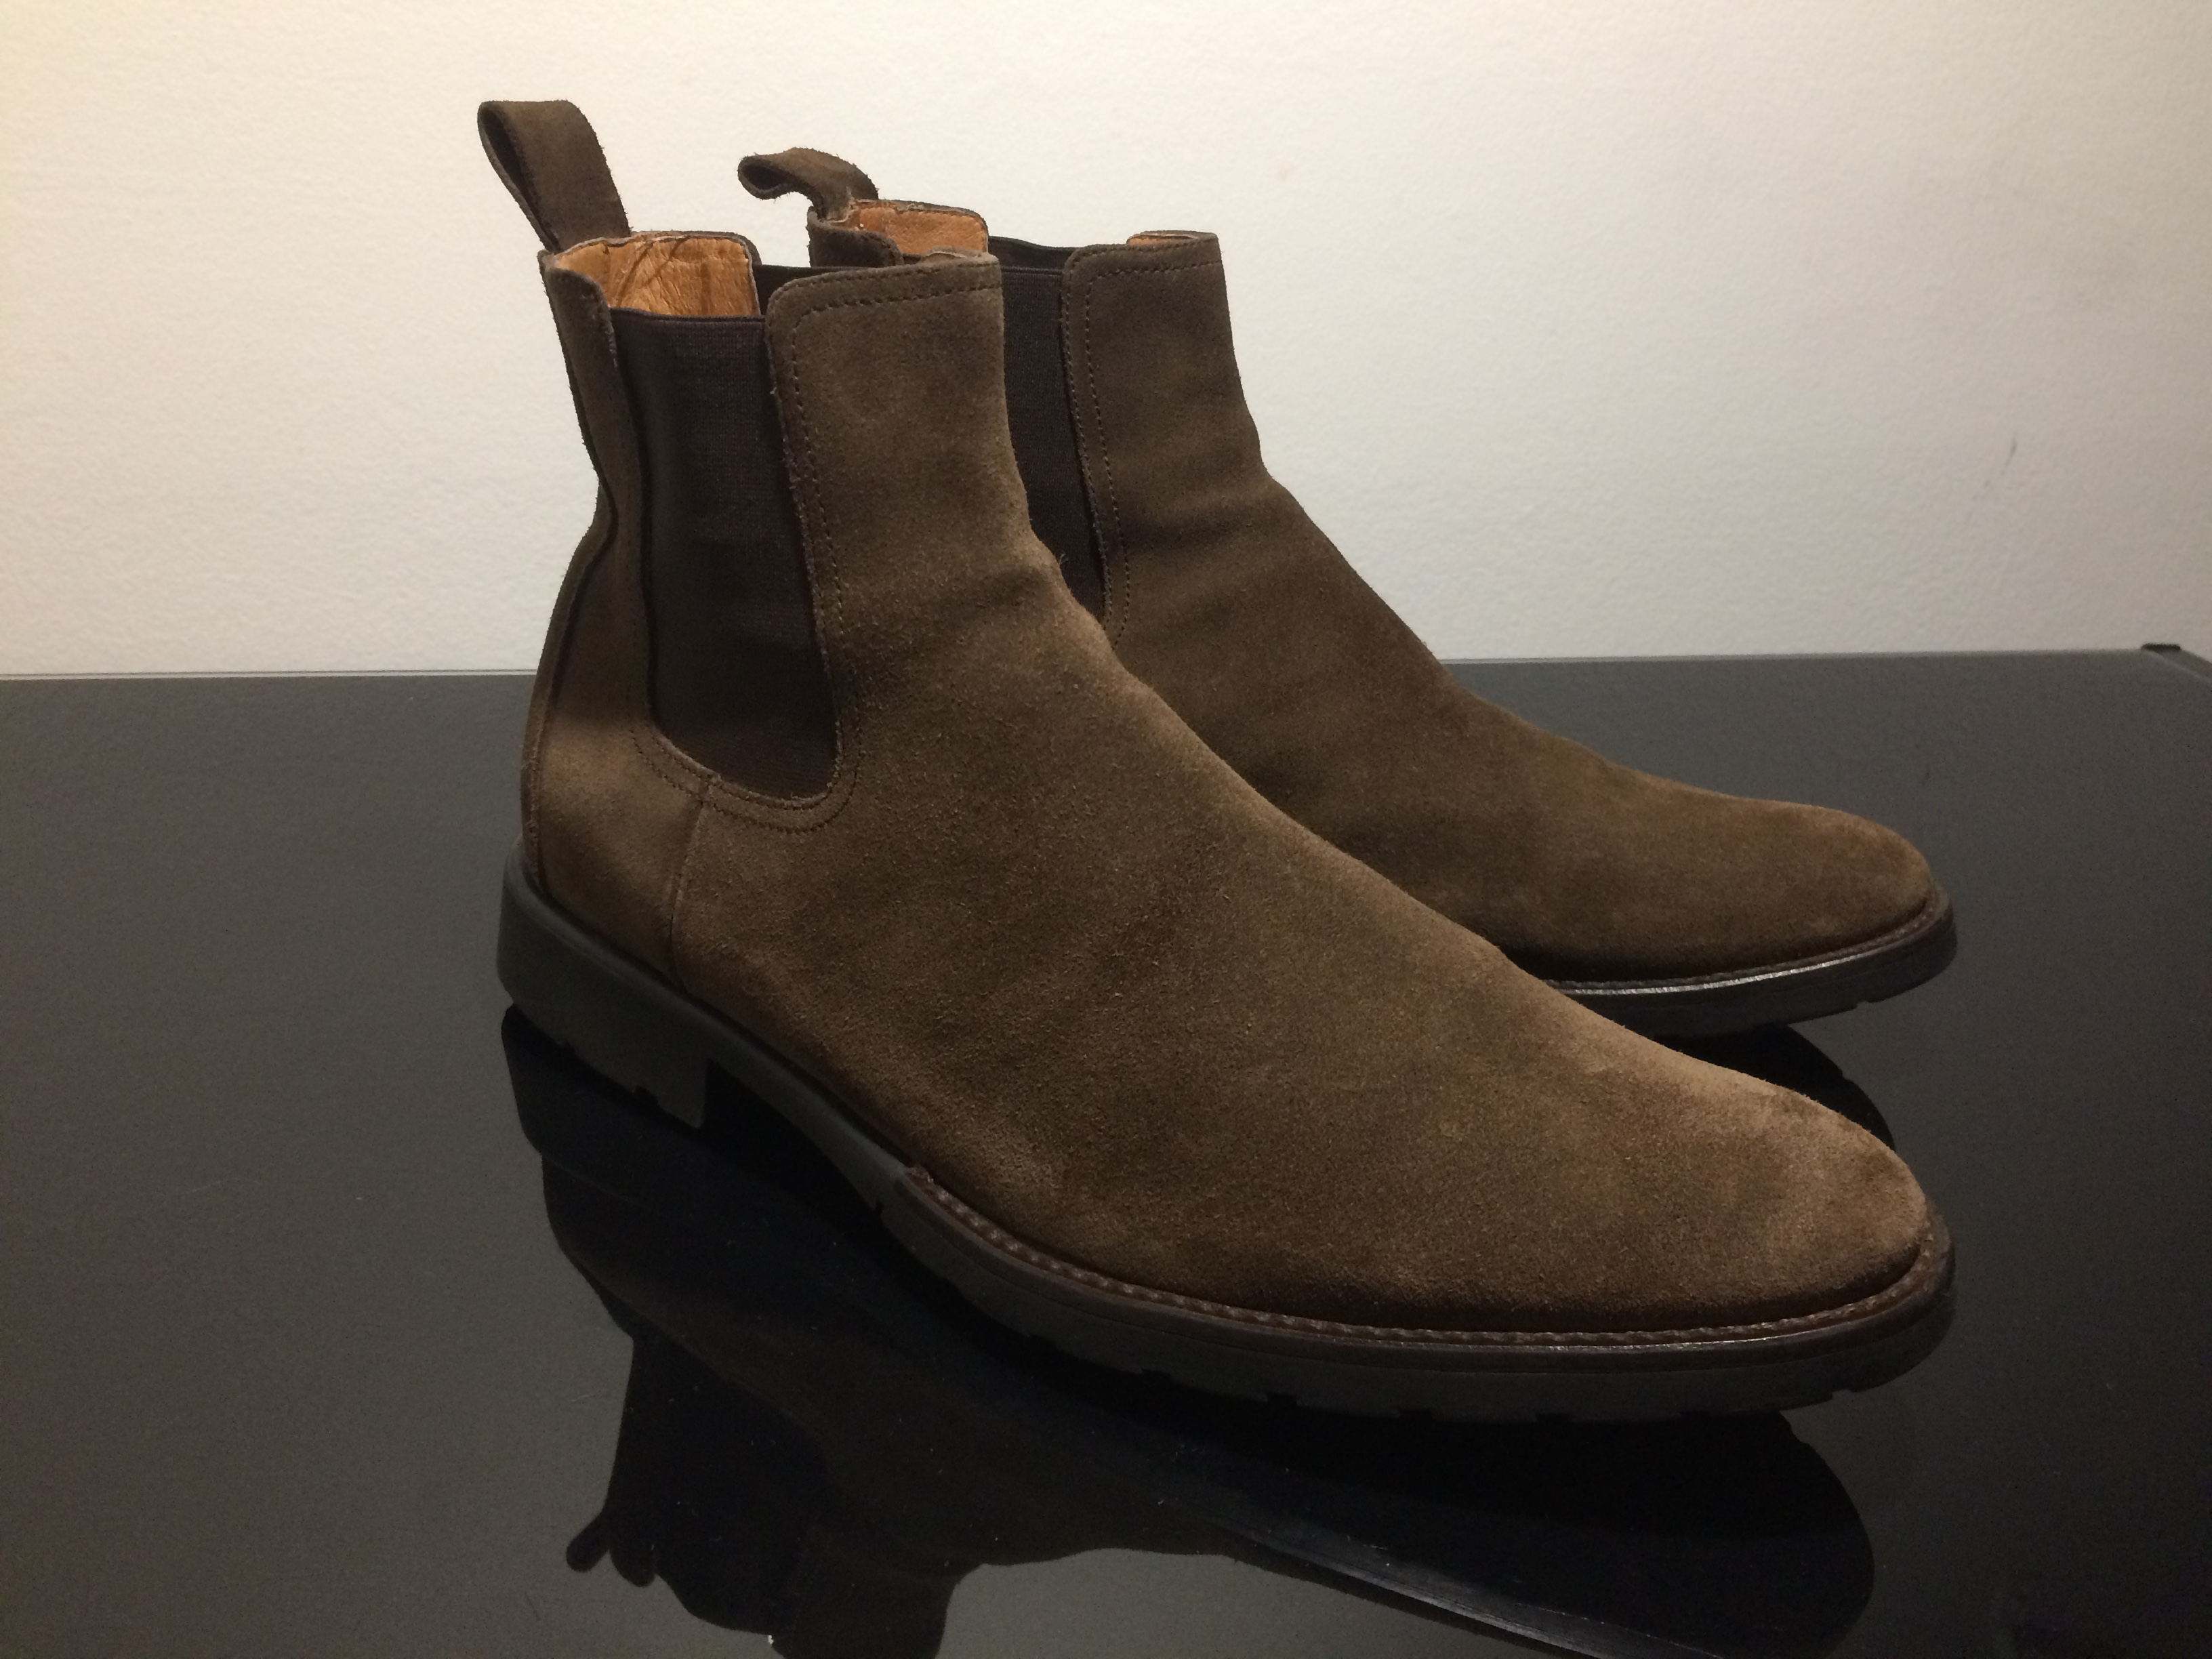 638f7cecefbc Barneys New York Tan Suede Chelsea Boots (fits Us 10 & 10.5) - Made ...